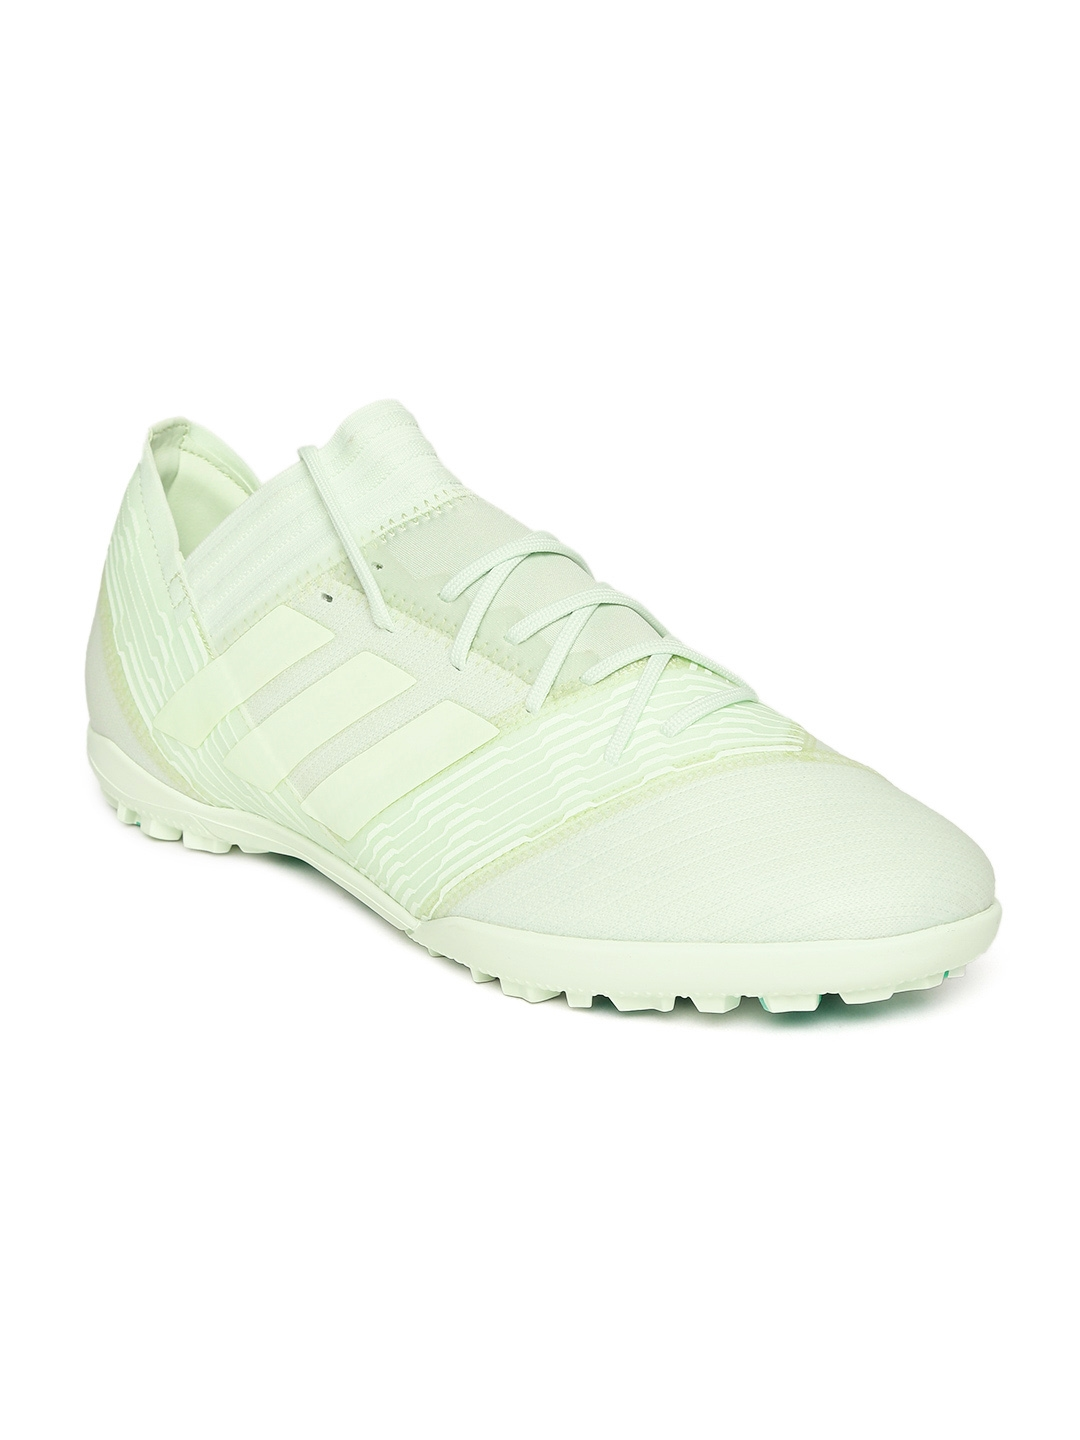 1667921661d9 Buy ADIDAS Men Light Green NEMEZIZ Tango 17.3 Turf Shoes - Sports ...